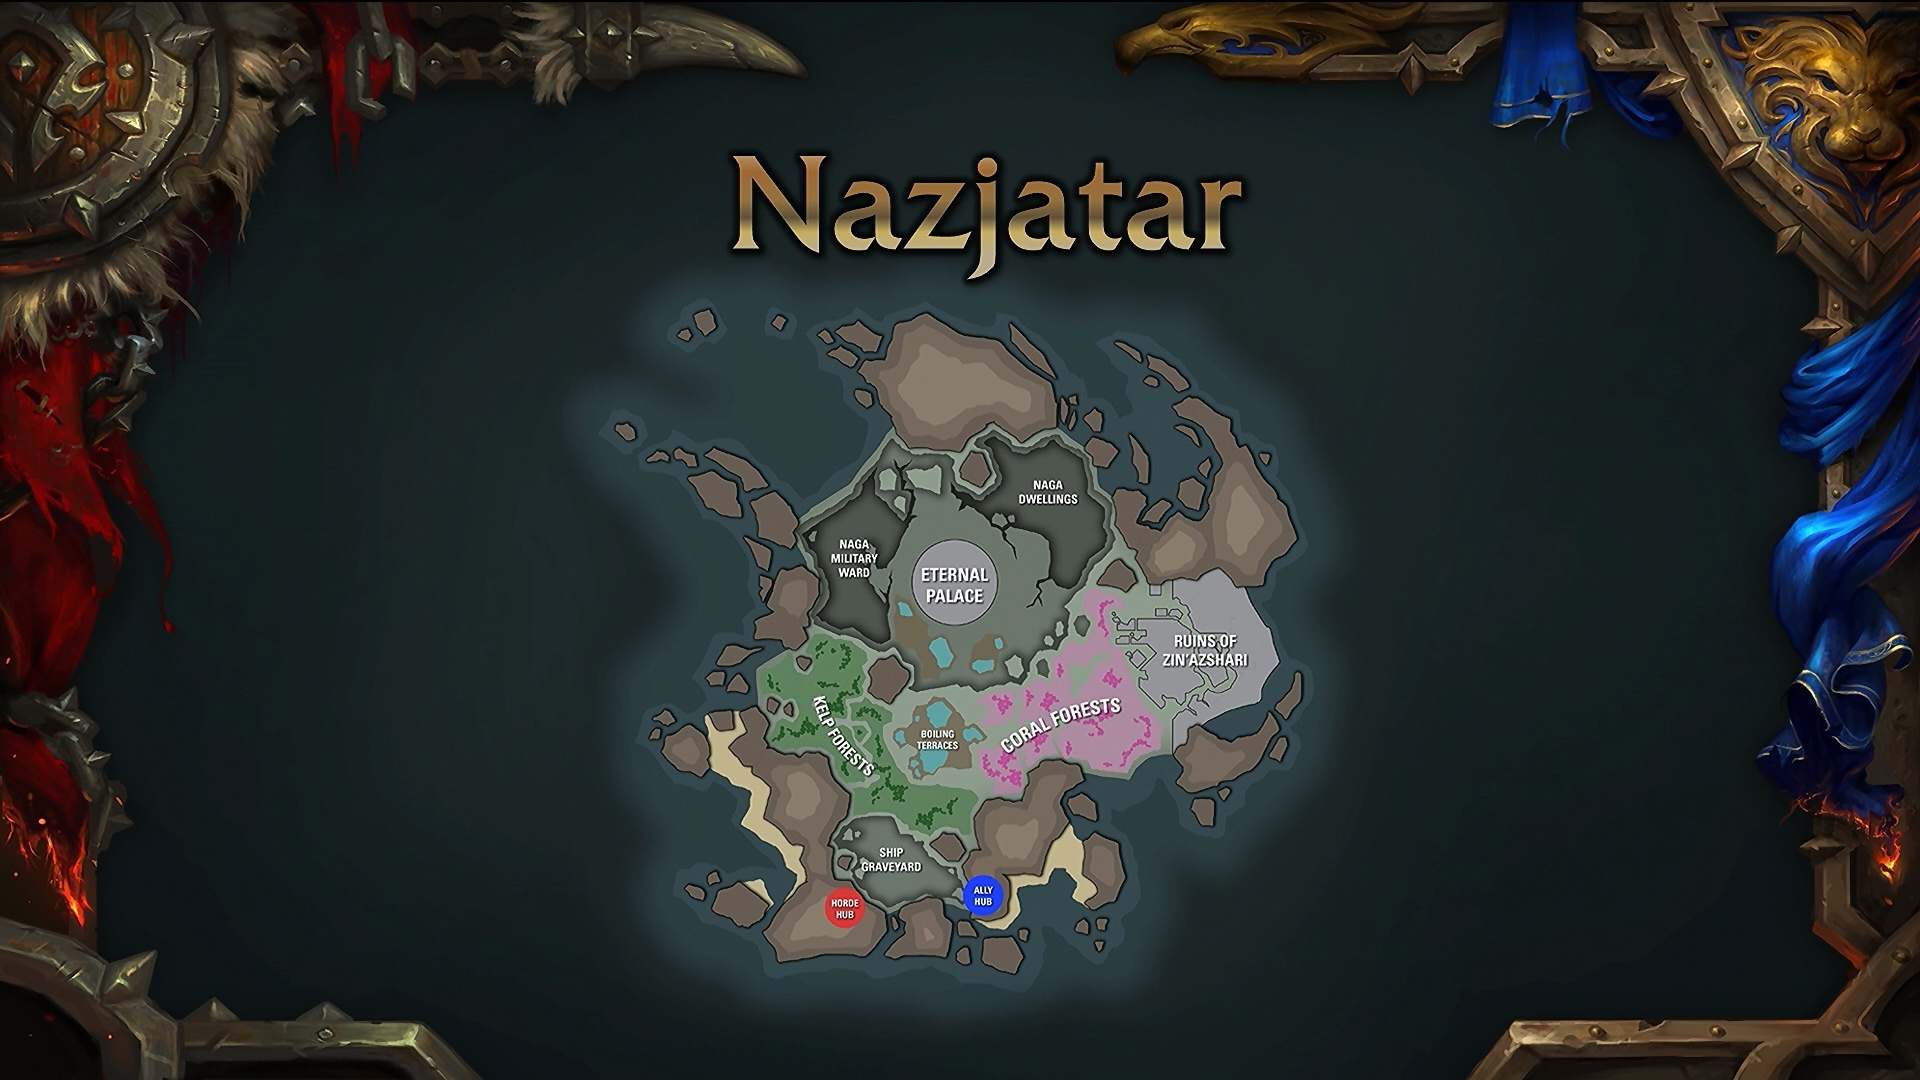 Carte de Nazjatar, nouvelle zone du patch 8.2